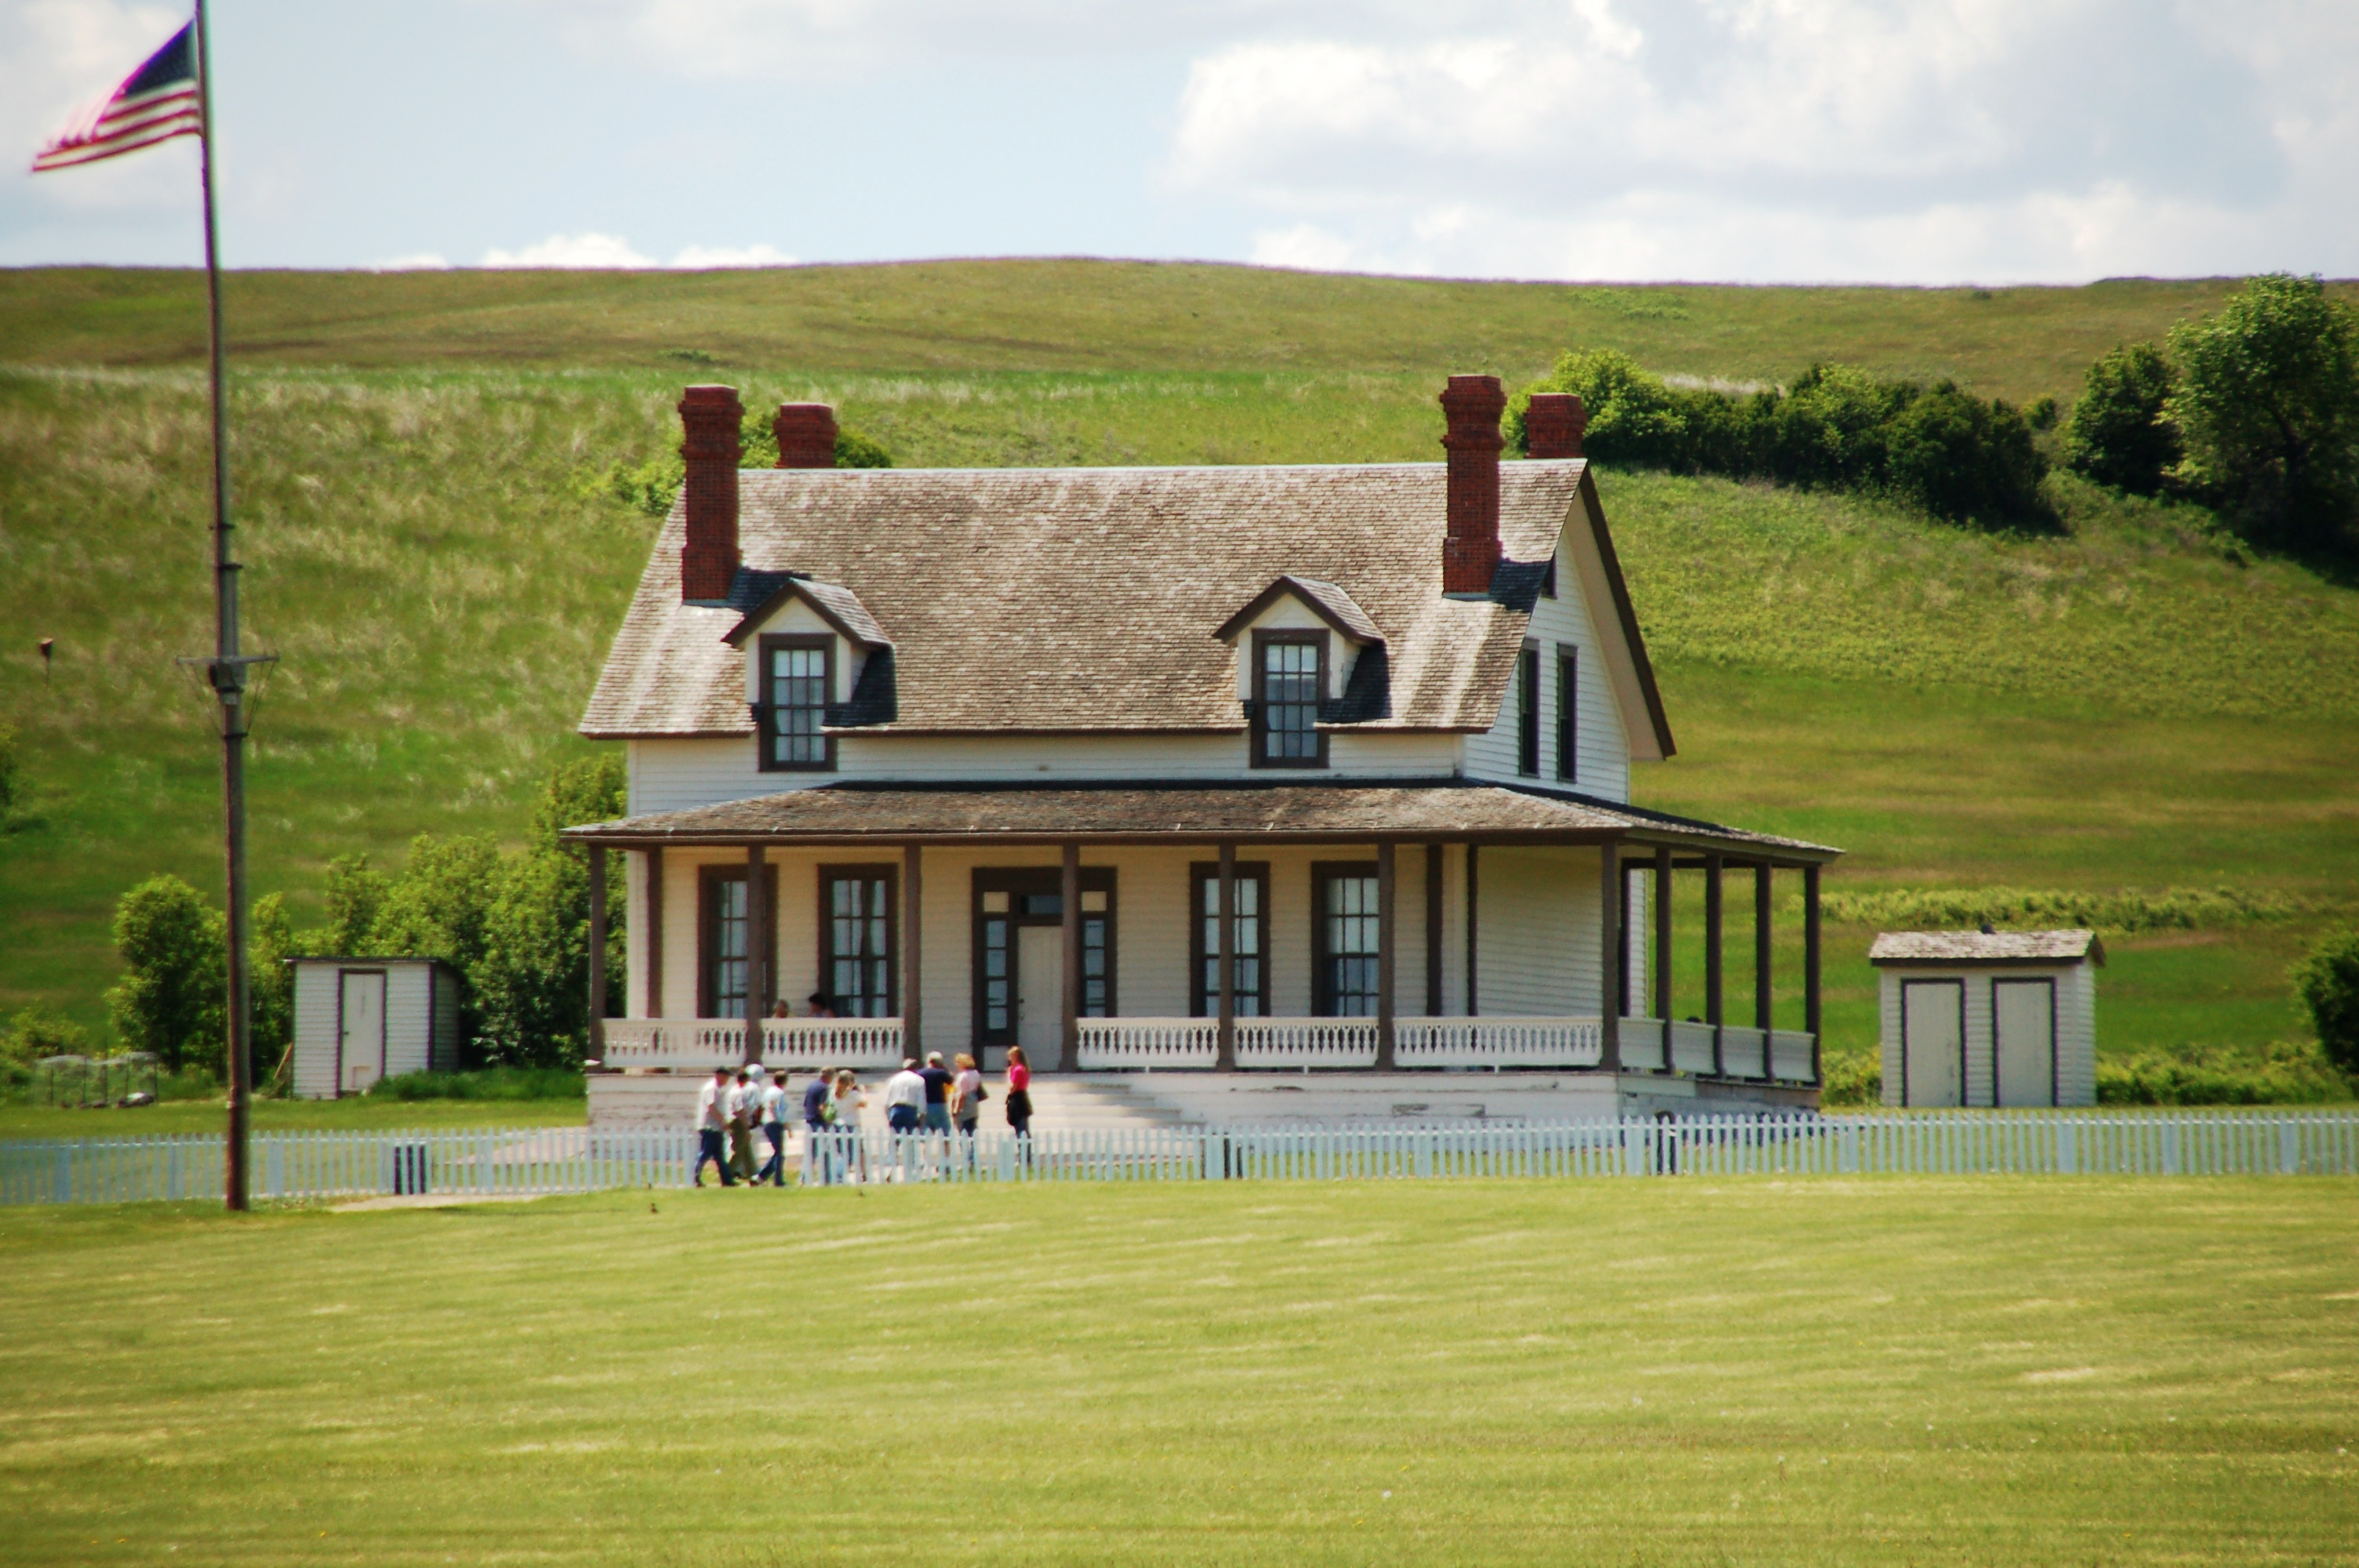 A reconstruction of the house in which Custer lived before The Battle of Little Big Horn. (Click photo to enlarge.)